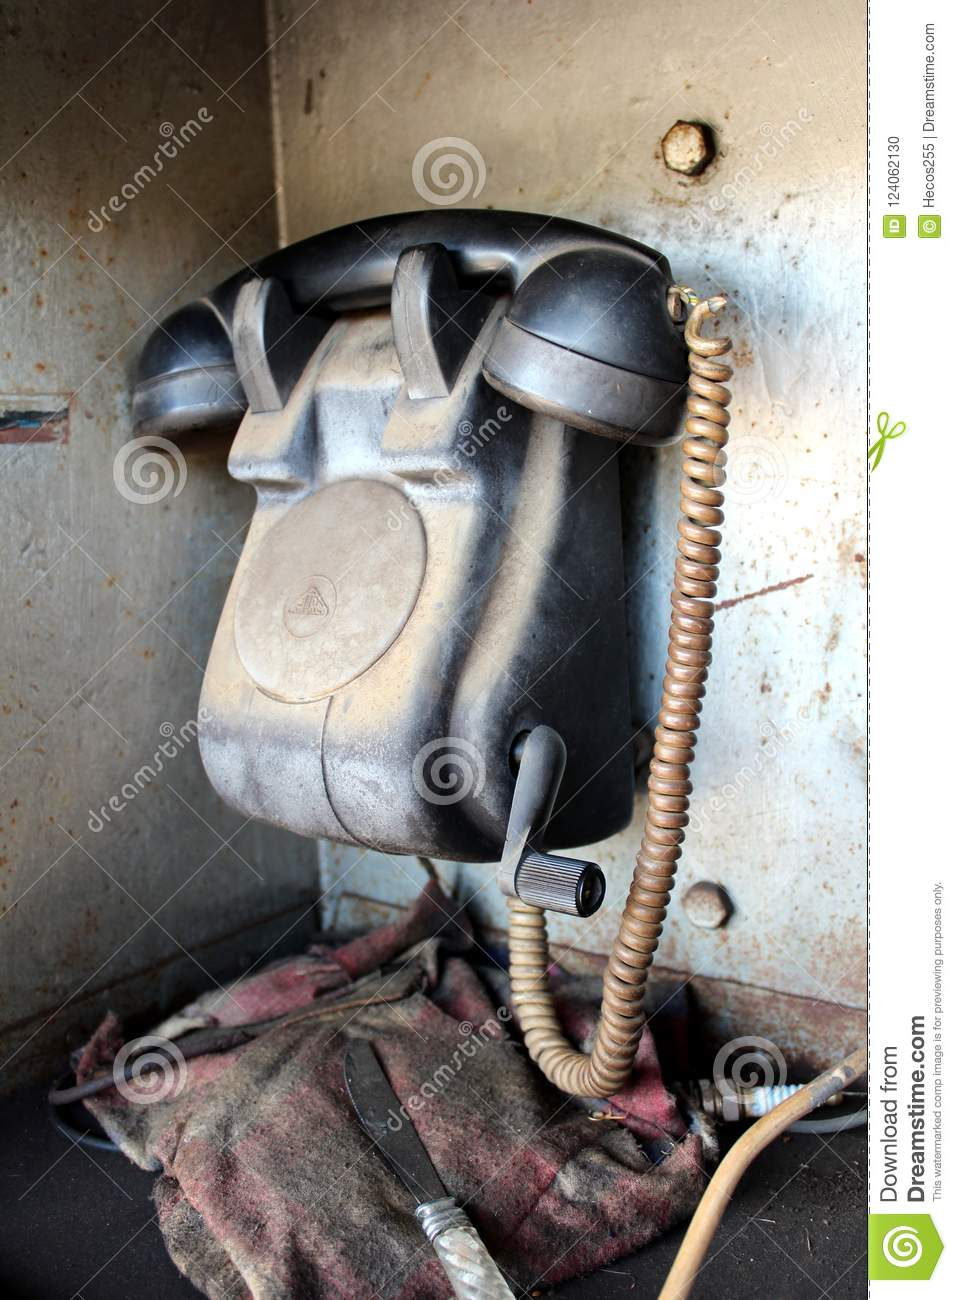 Retro Black Telephone Communication Device Used For Railway